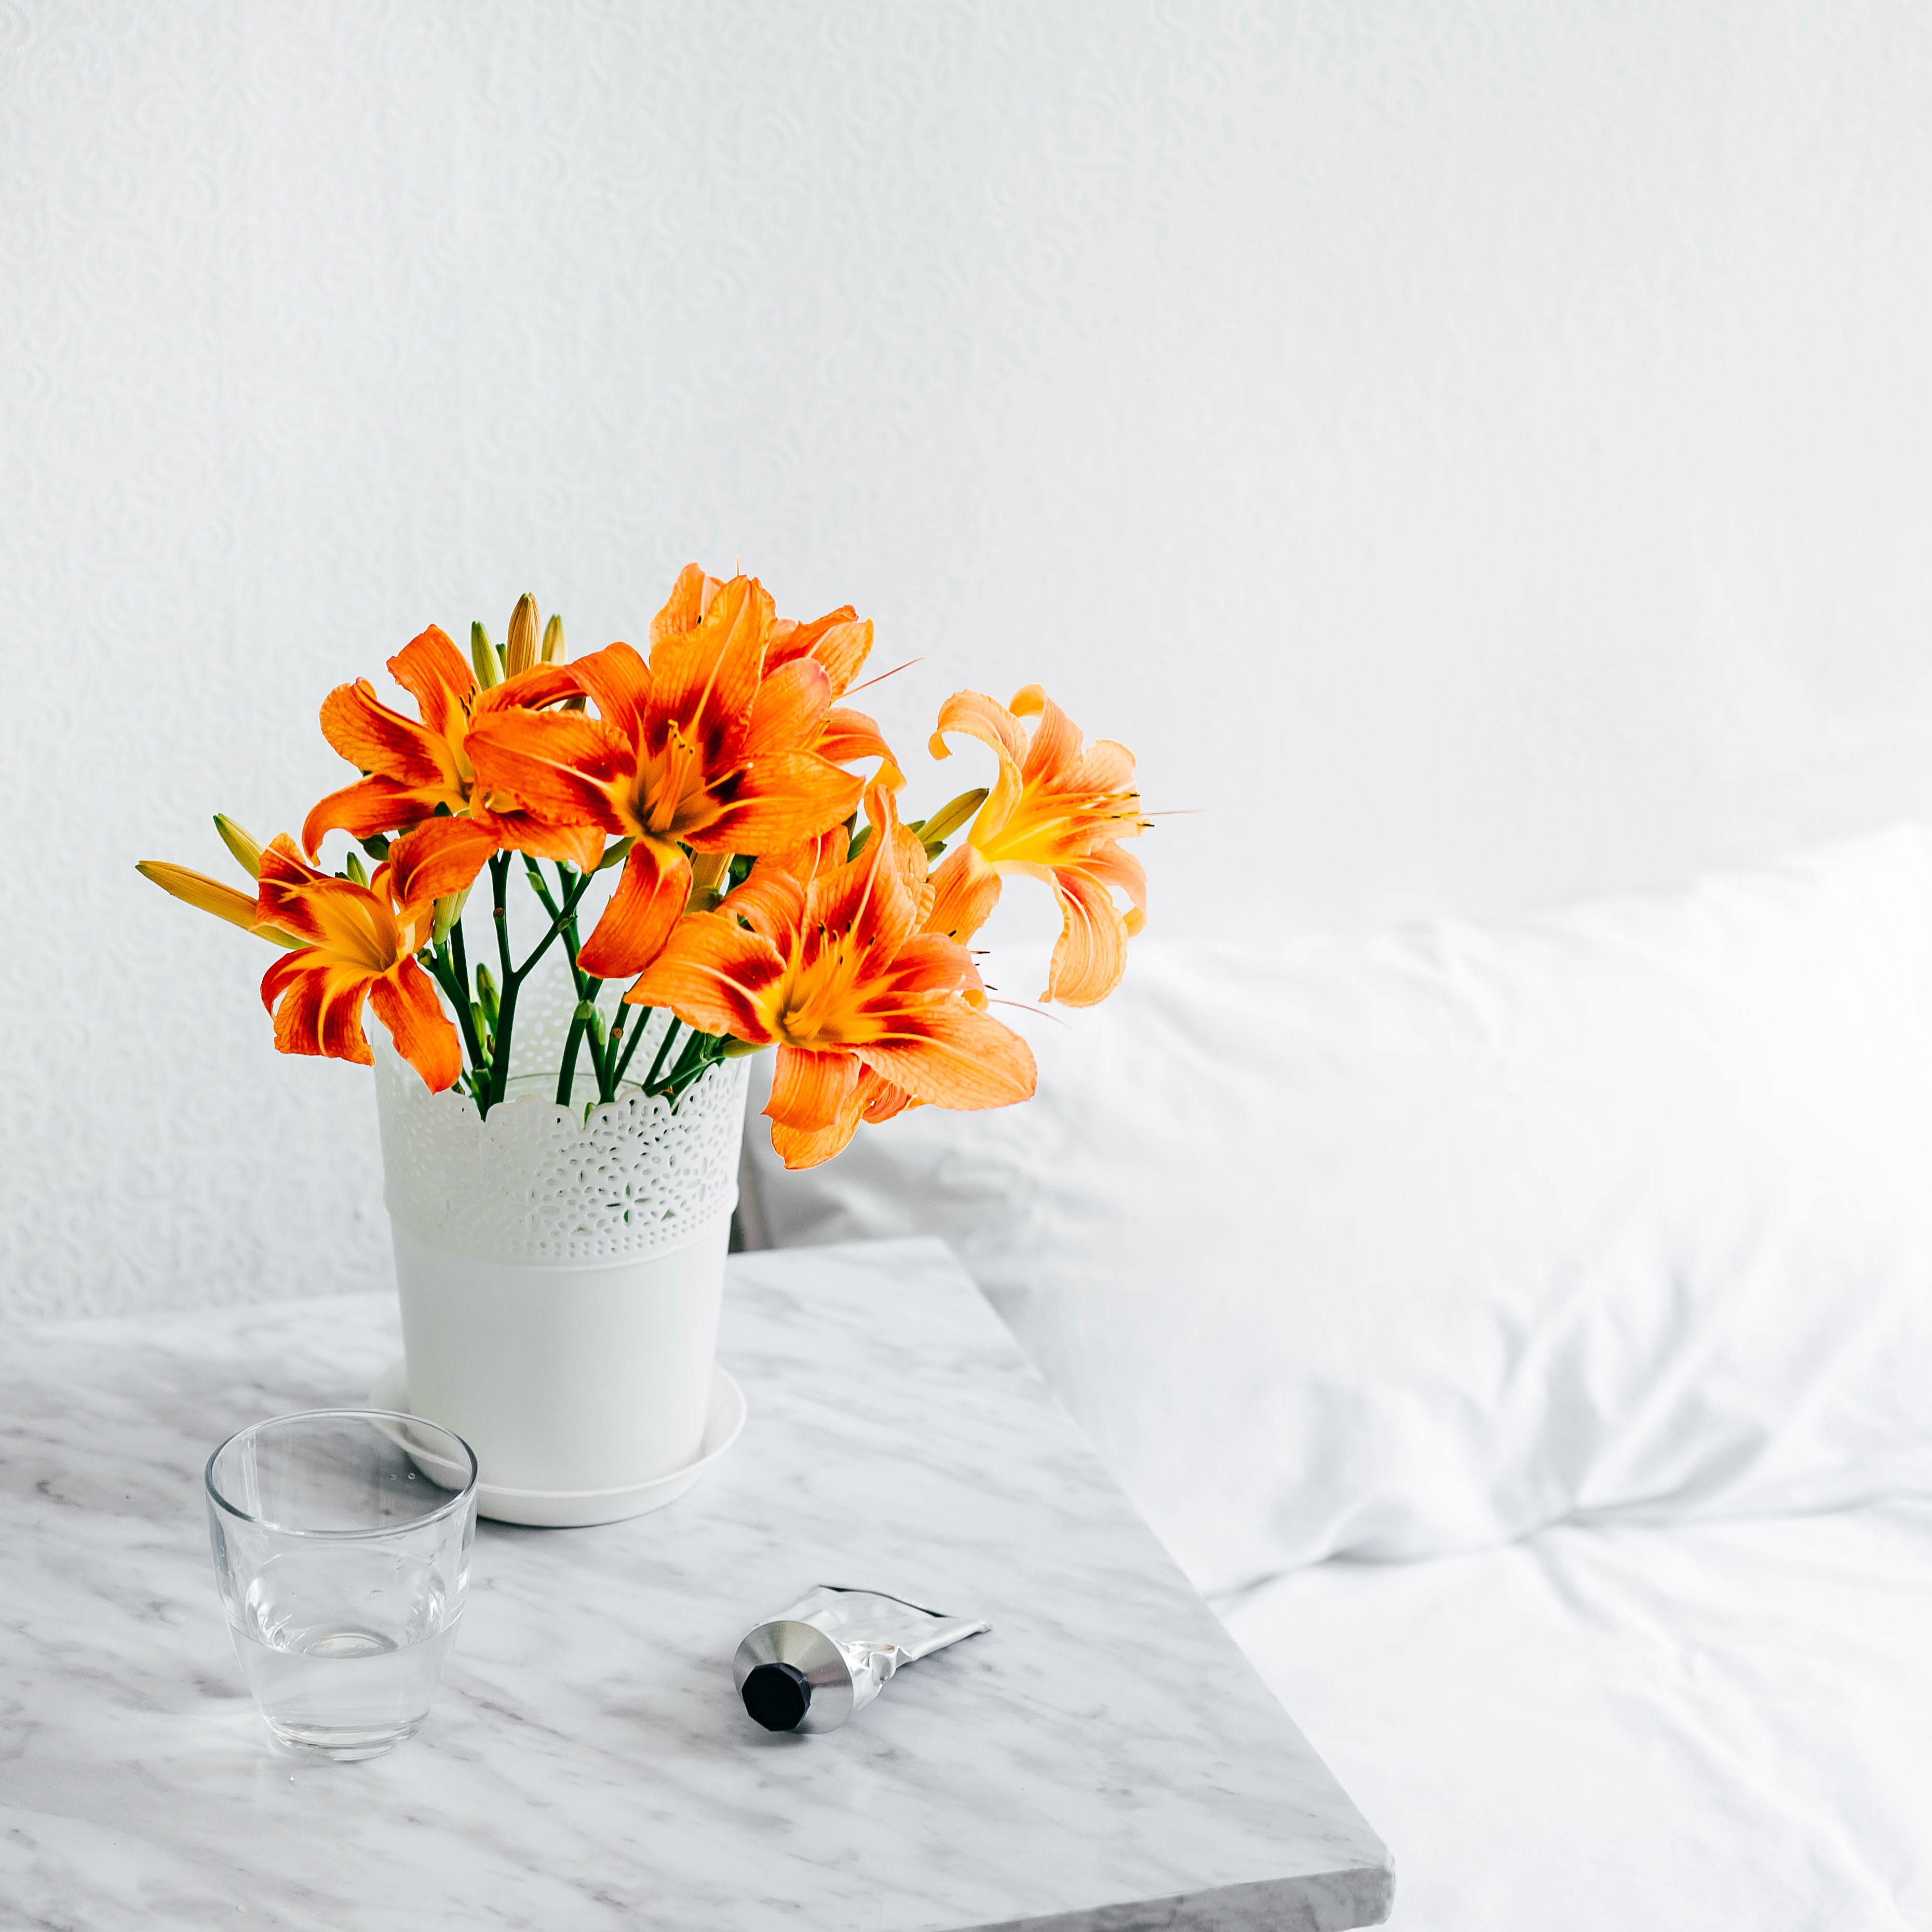 A bouquet of Tiger Lily's on a marble table next to a bed